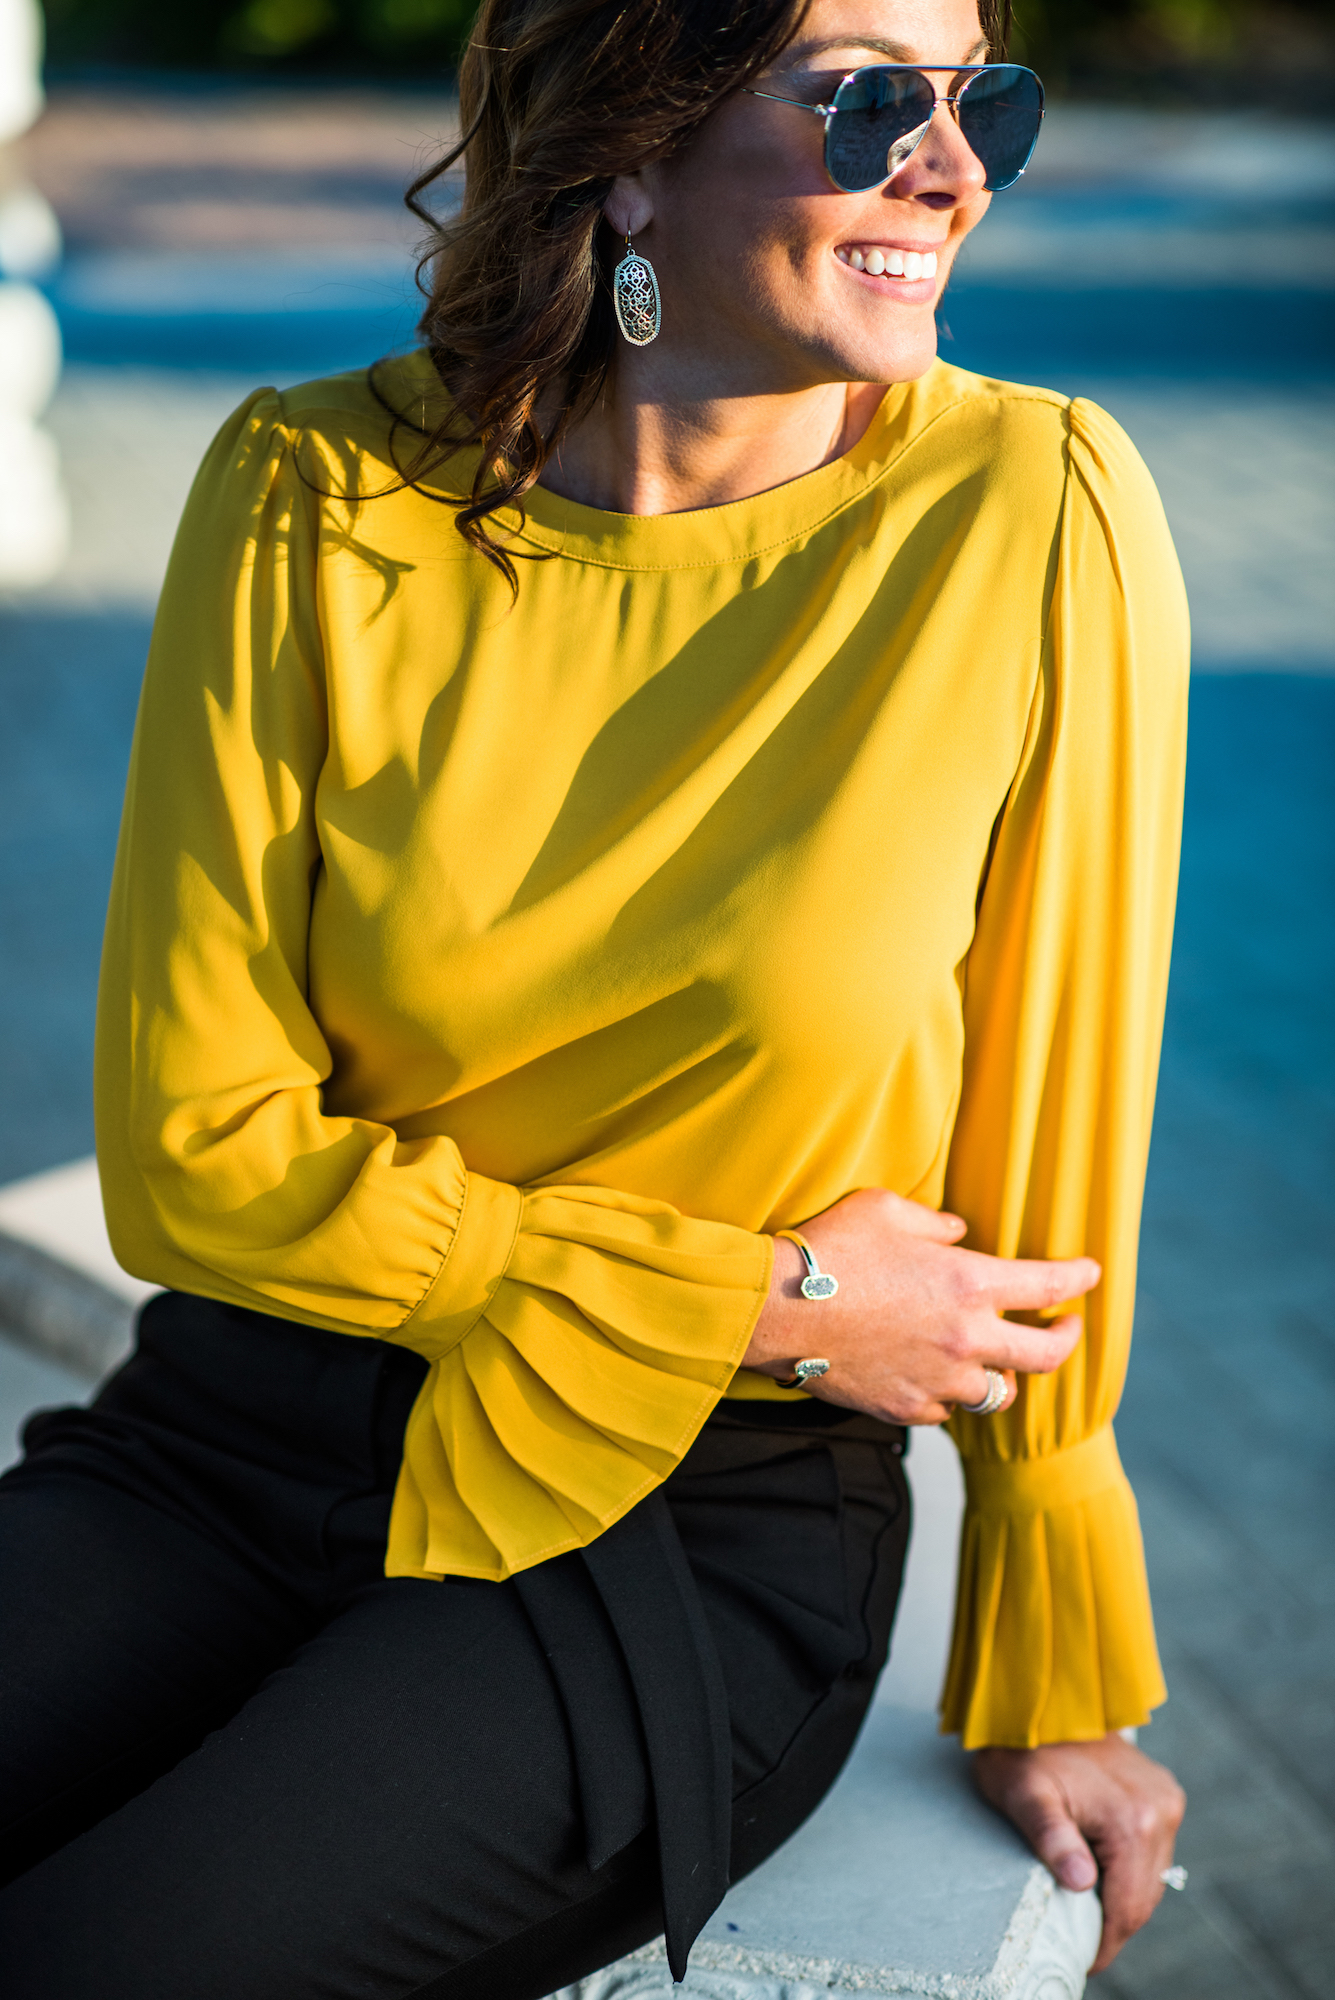 top sleeve detail, kendra Scott cuff, gold earrings, business casual